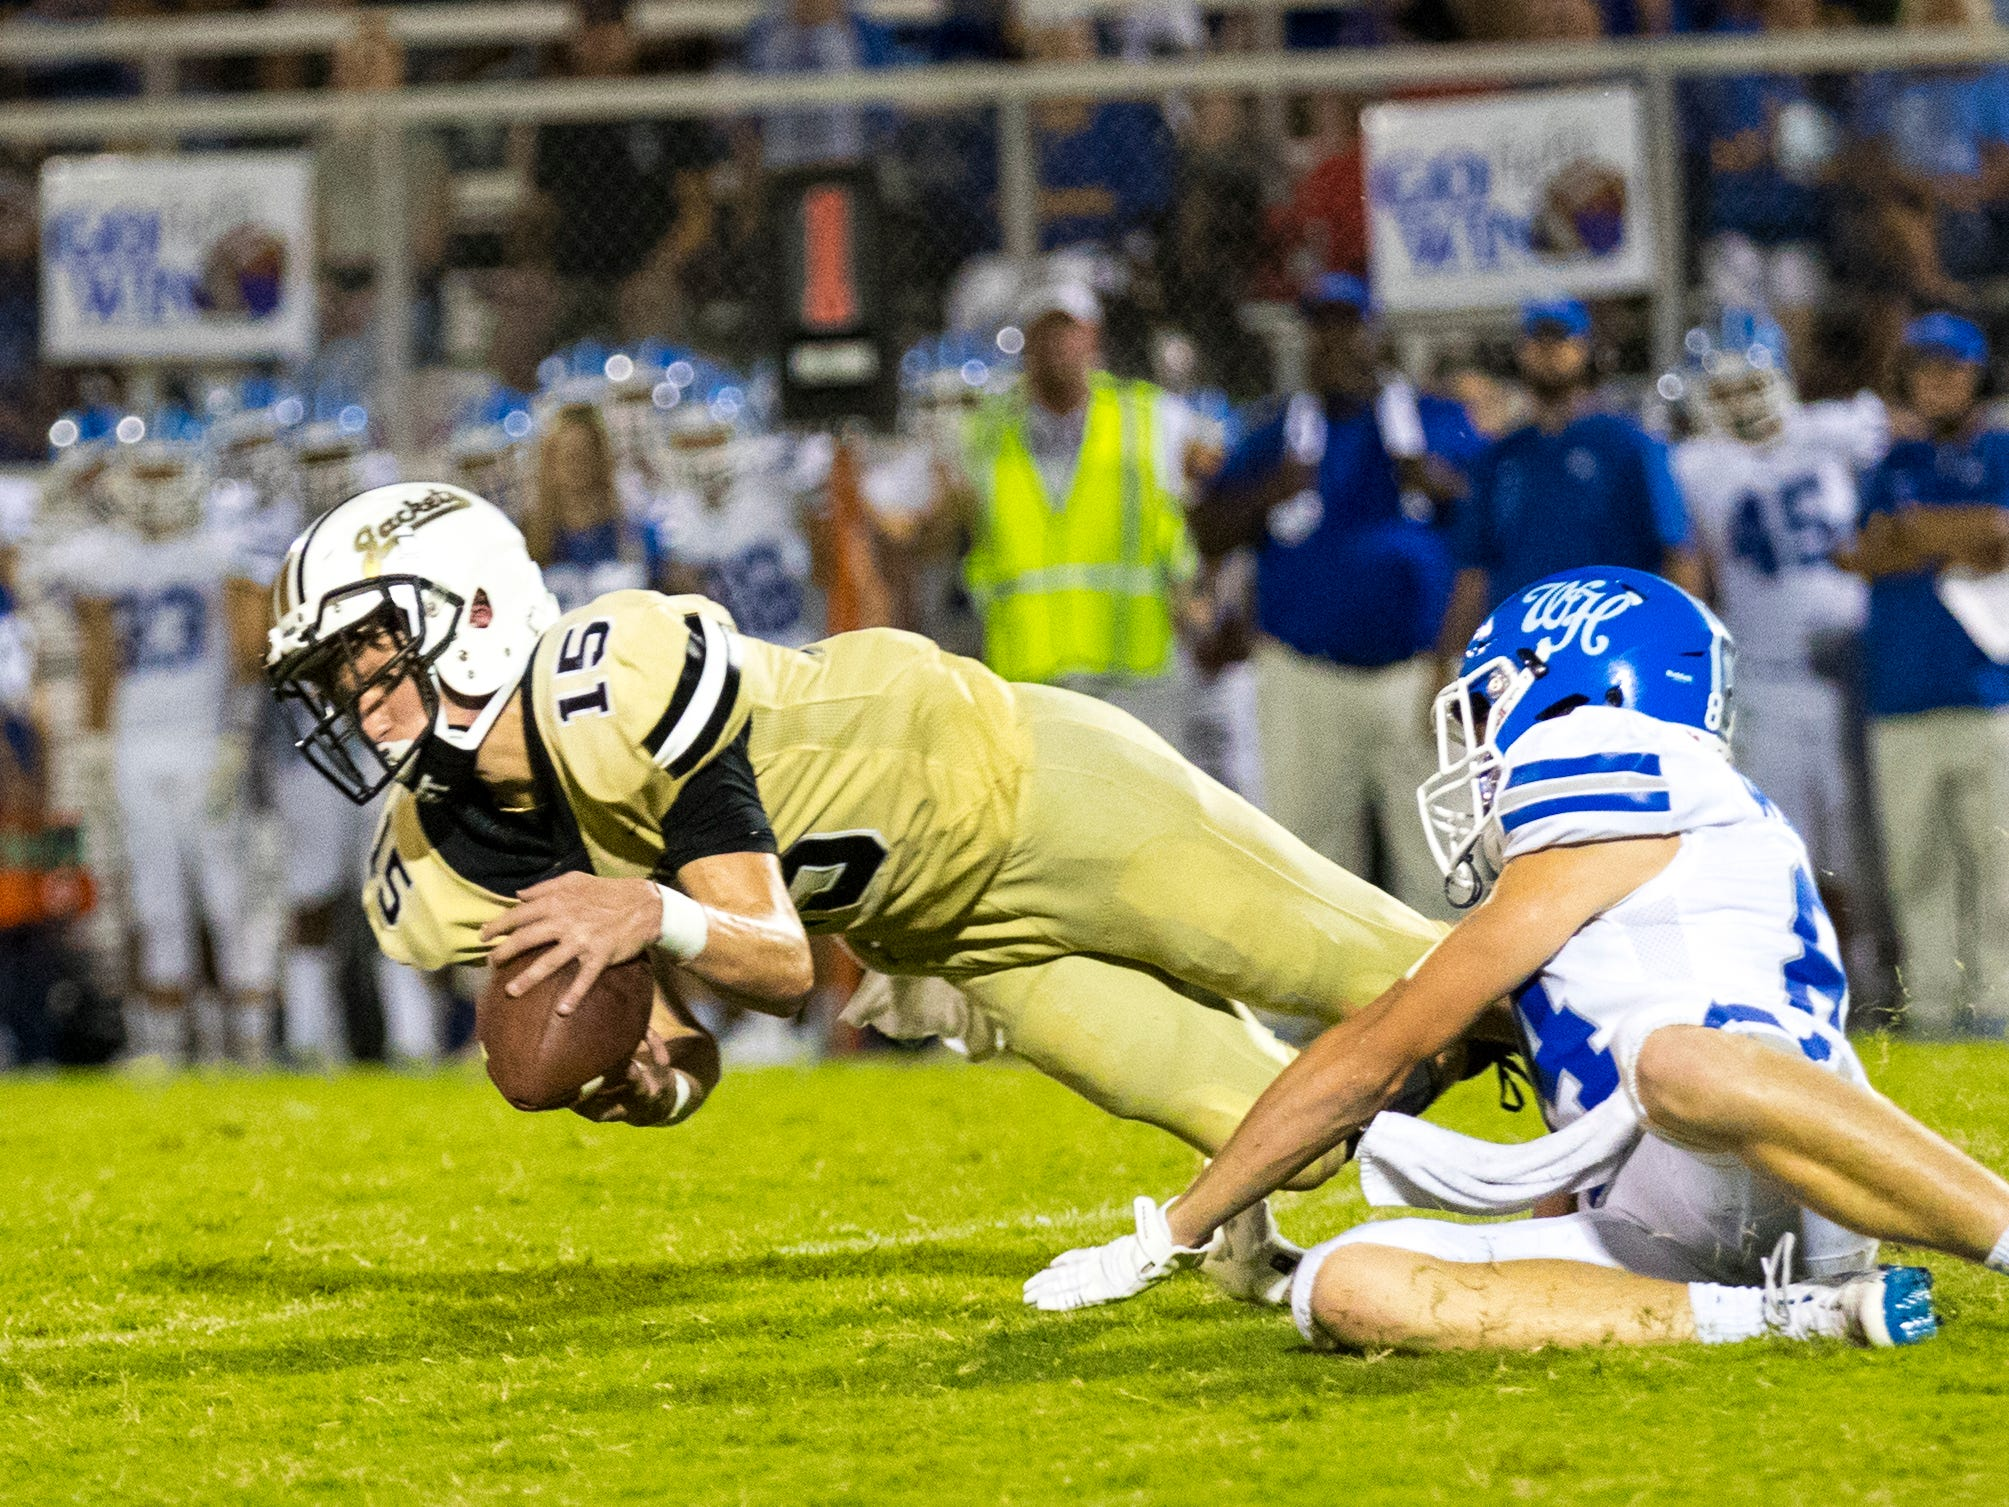 Springfield's Cale Jones (15) dives for an interception during Springfield's game against White House at Springfield High School in Springfield on Friday, Sept. 14, 2018.